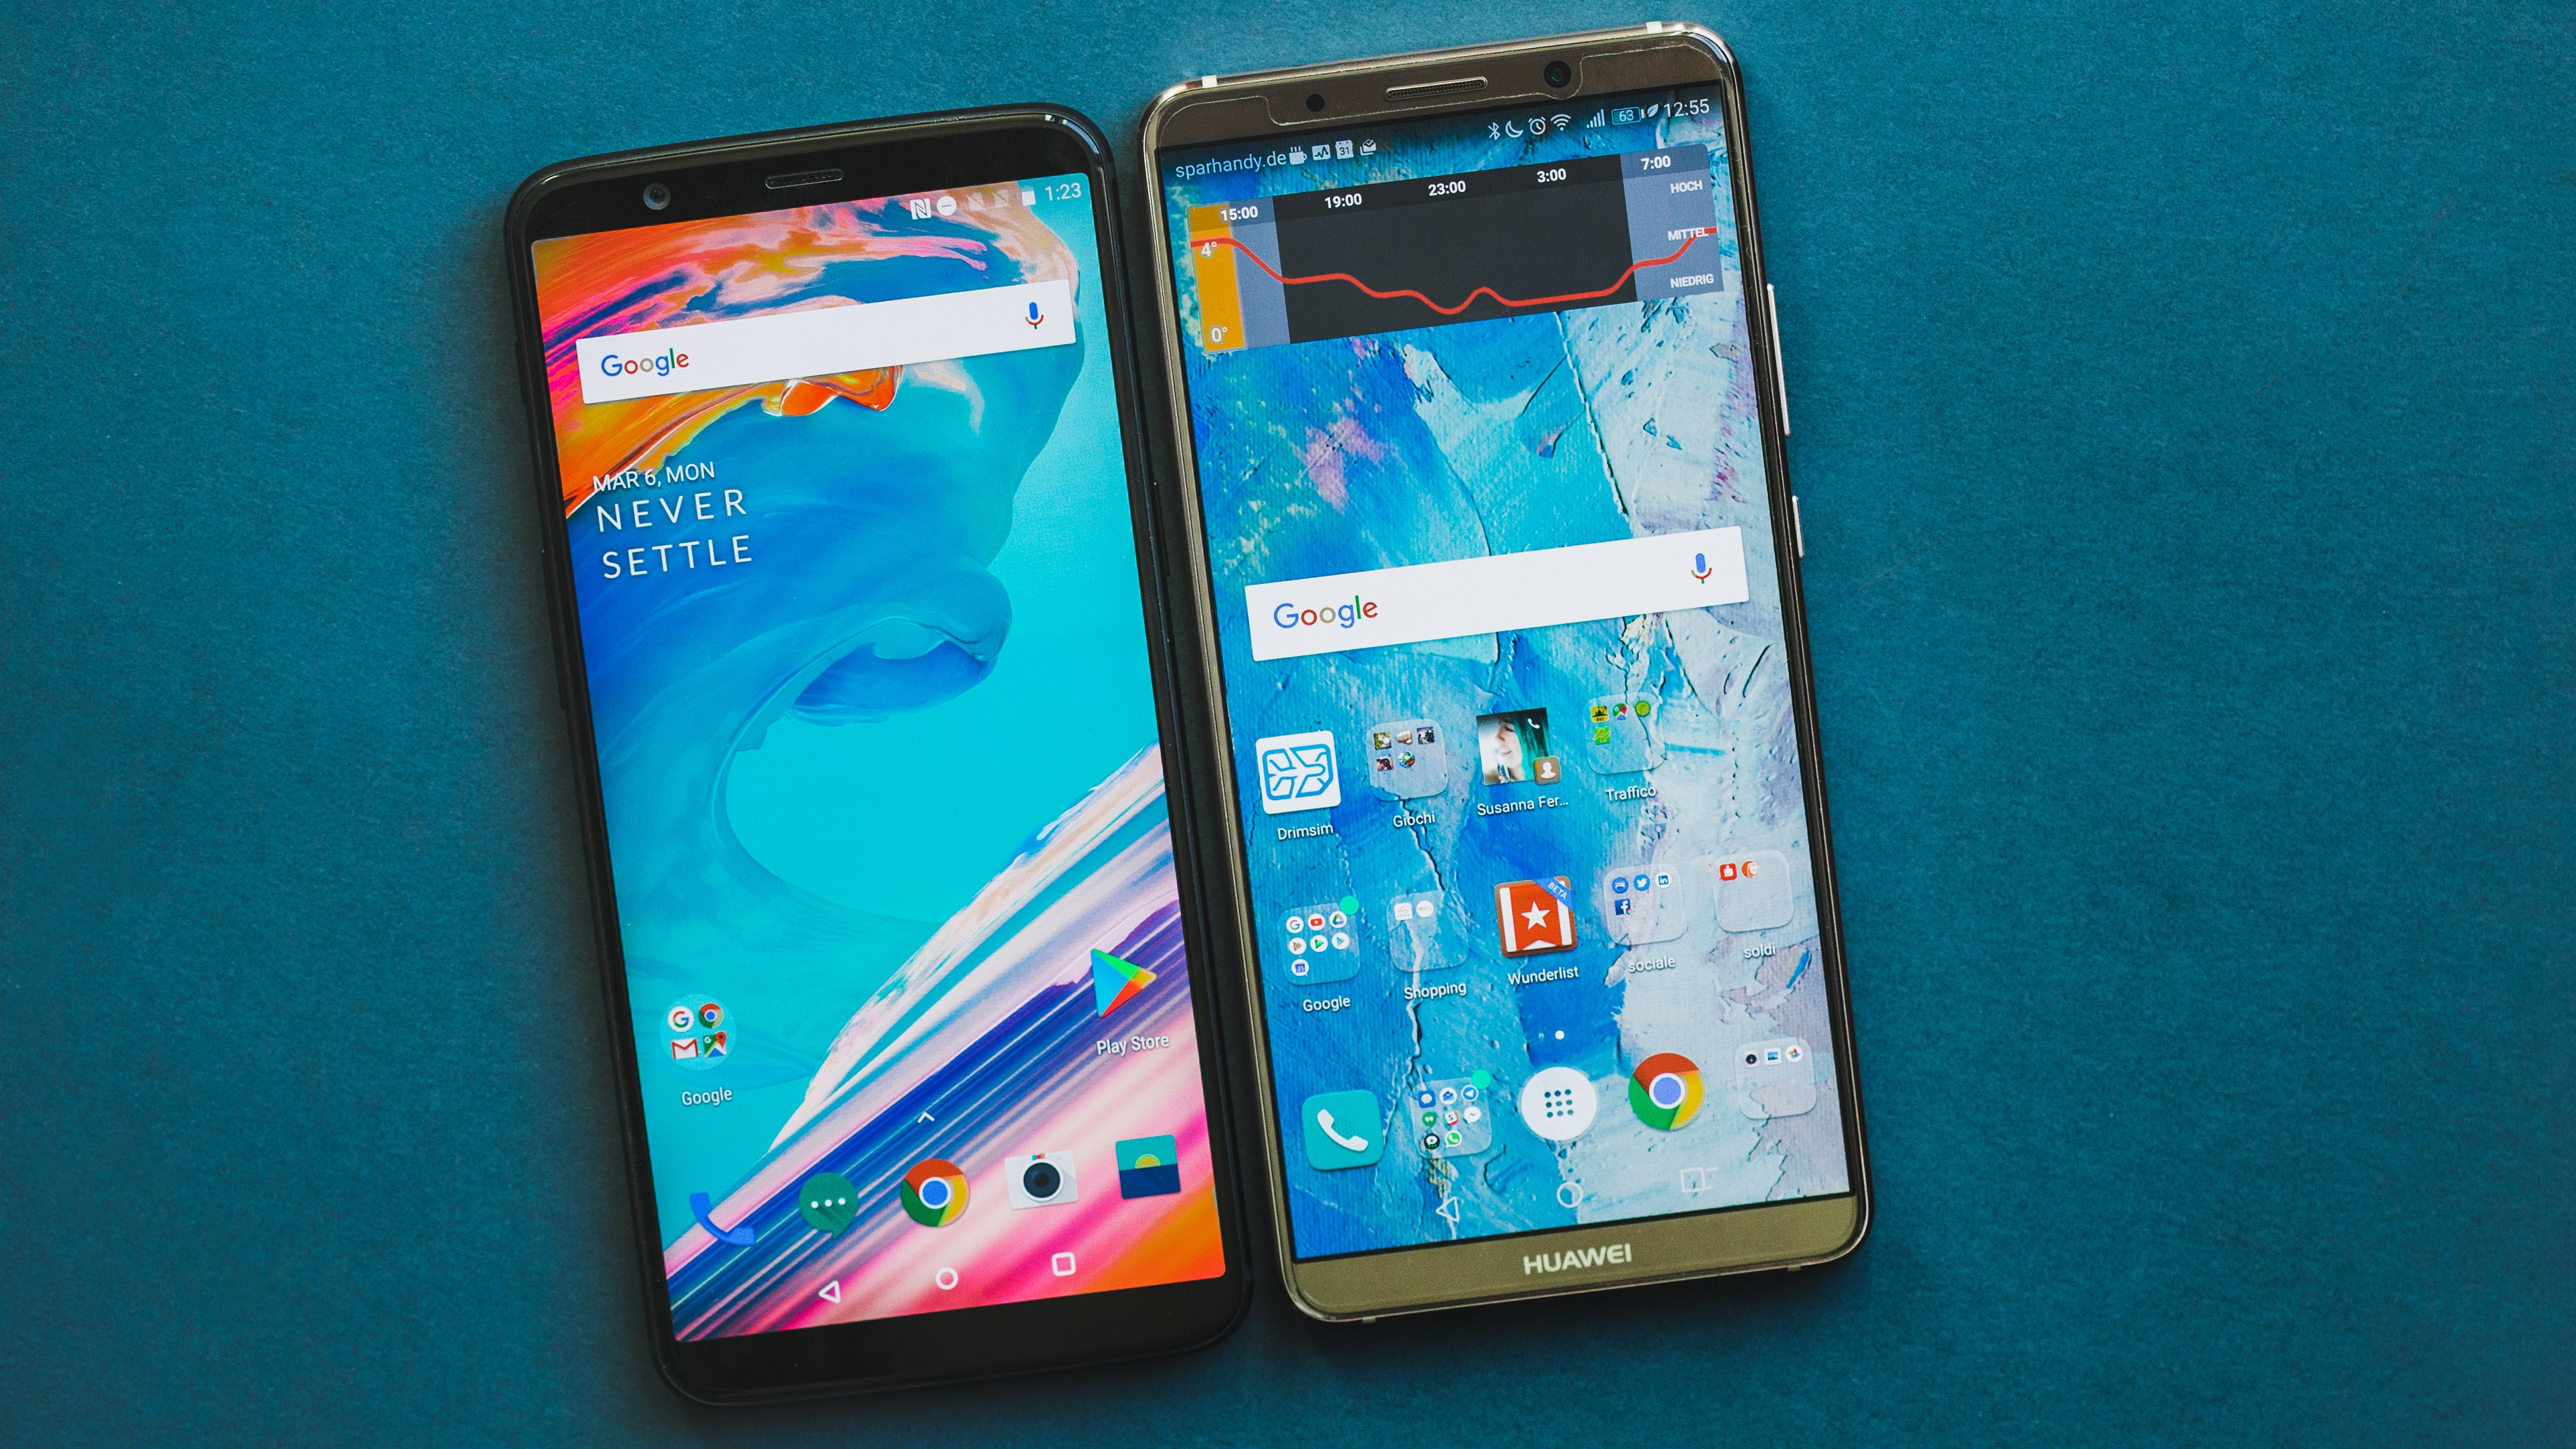 Huawei Mate 10 Pro vs OnePlus 5T: Looking for alternatives